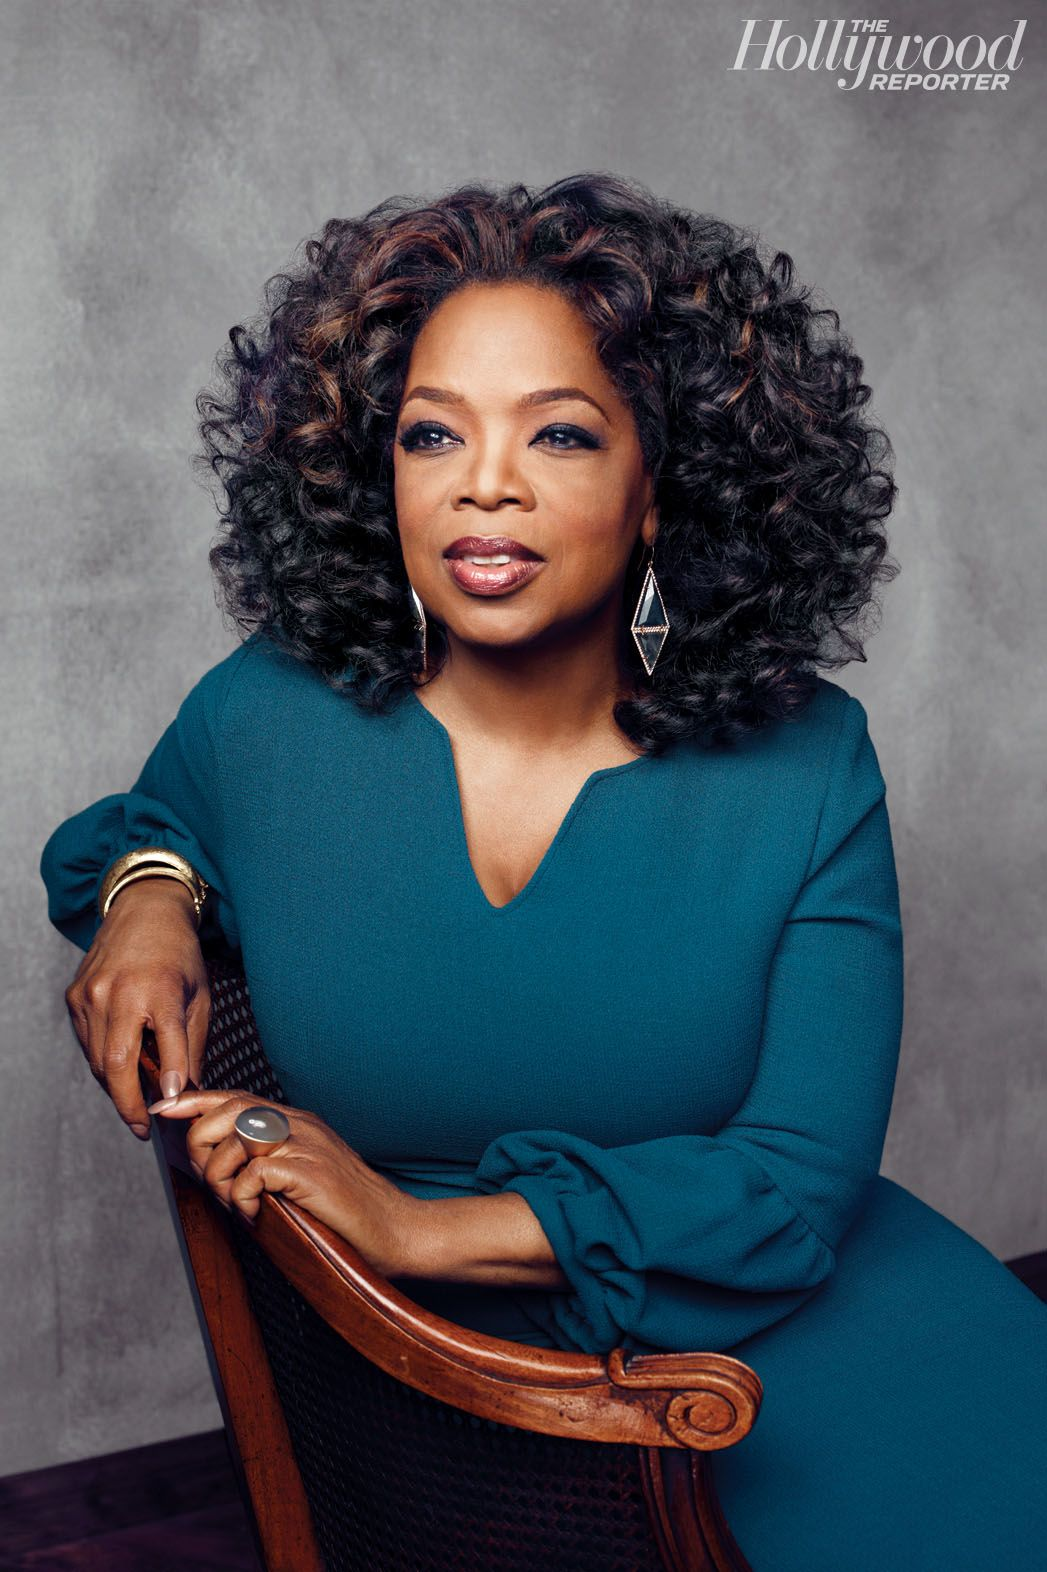 best images about oprah winfrey the best 17 best images about oprah winfrey the best show queen a and inspirational